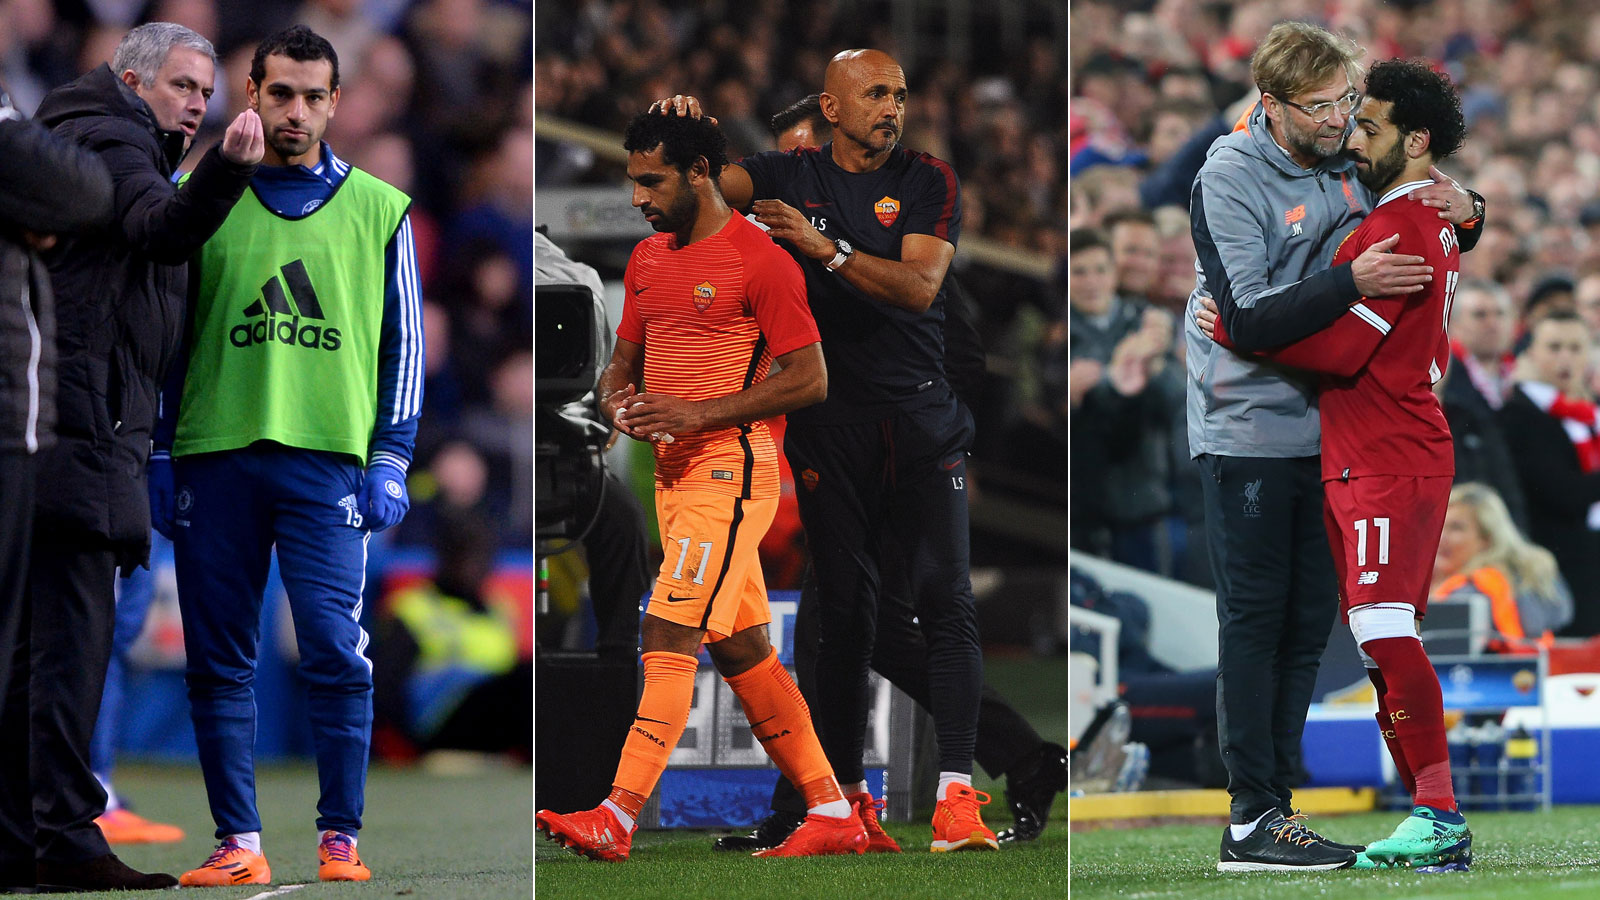 Mohamed Salah has played for Jose Mourinho, Luciano Spalletti and Jurgen Klopp